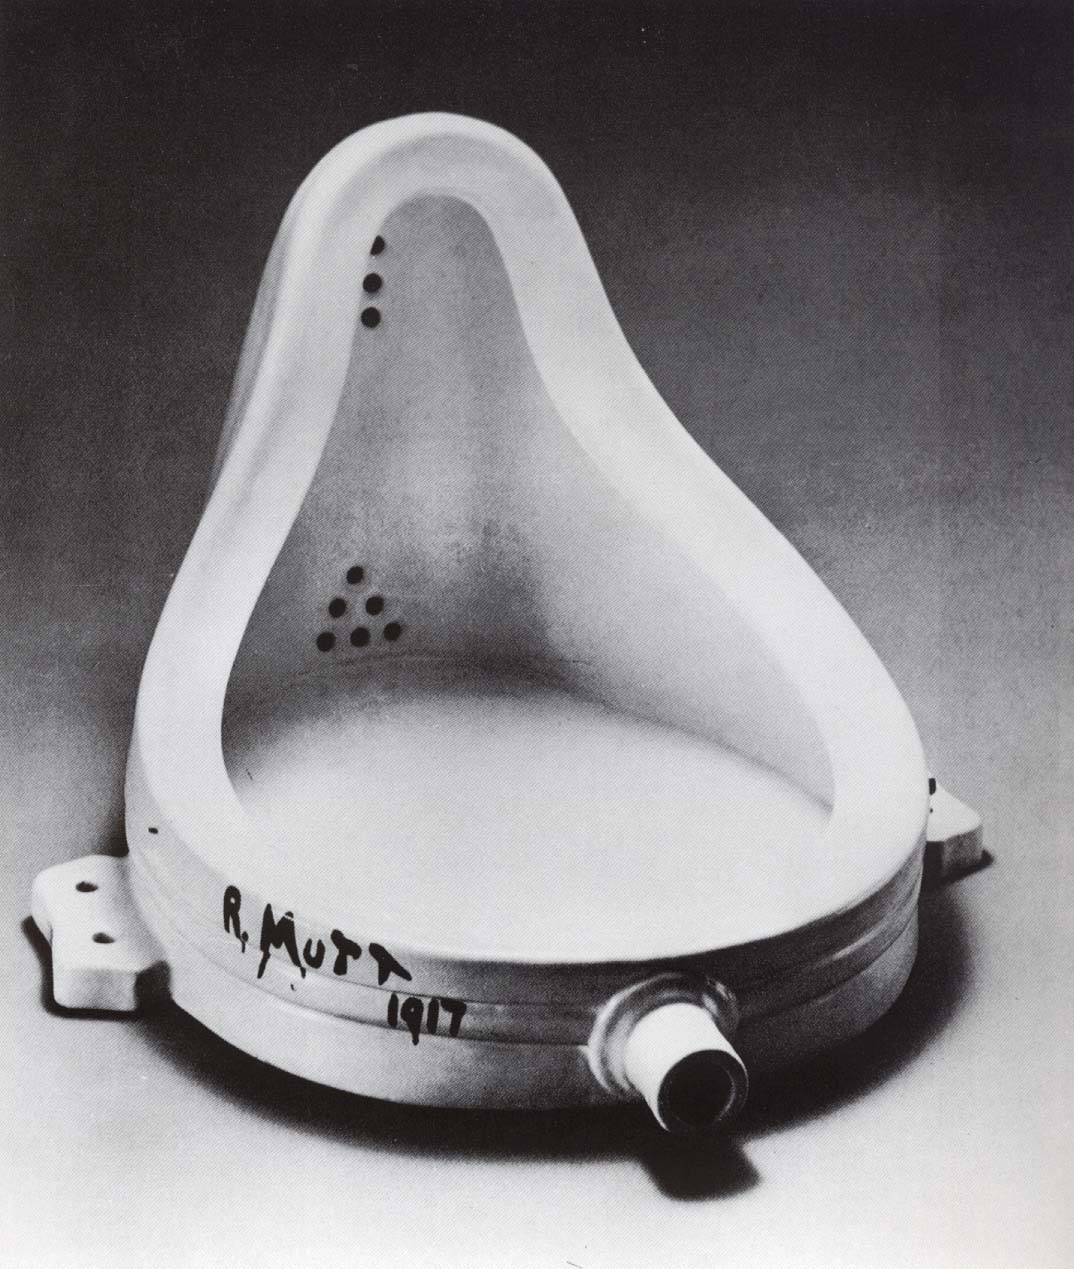 http://upload.wikimedia.org/wikipedia/commons/c/ce/Marcel_Duchamp.jpg